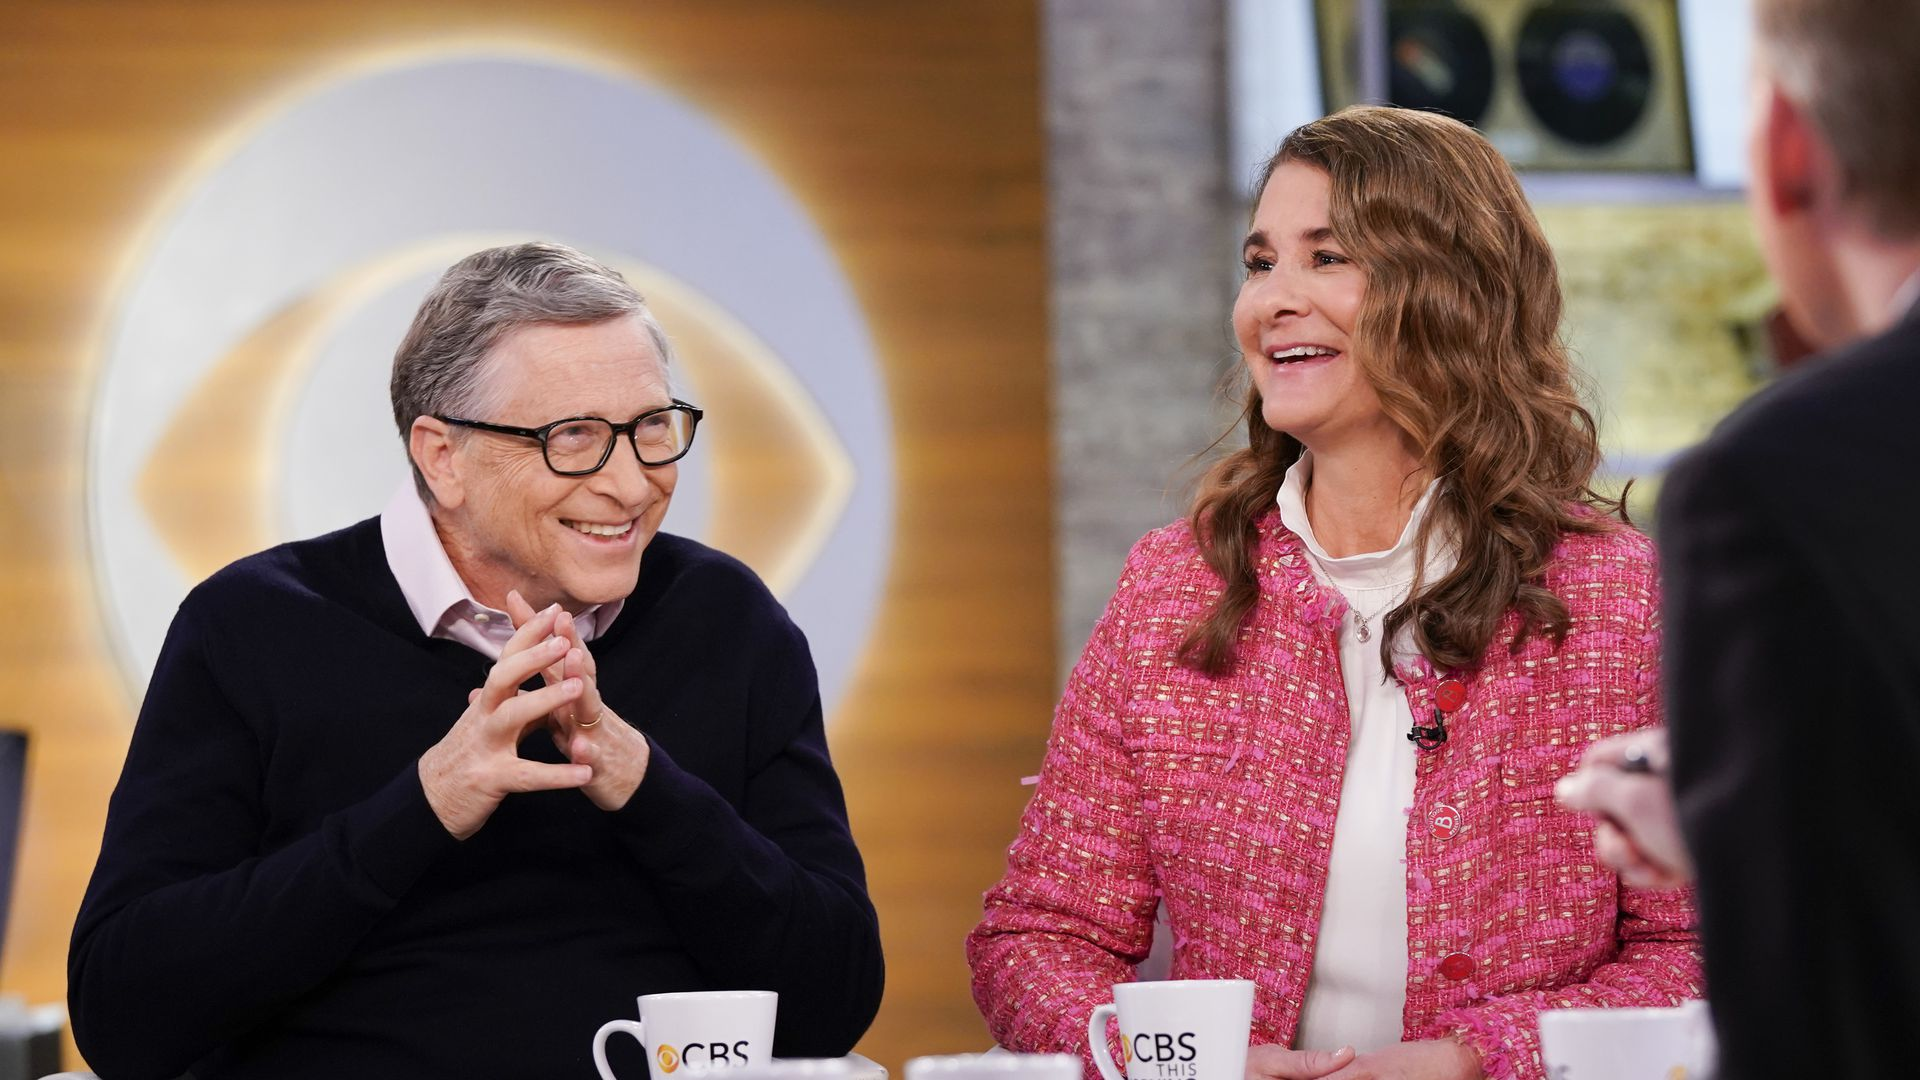 Bill Gates and Melinda Gates laugh on the set of CBS this morning, with the CBS symbol in the background.